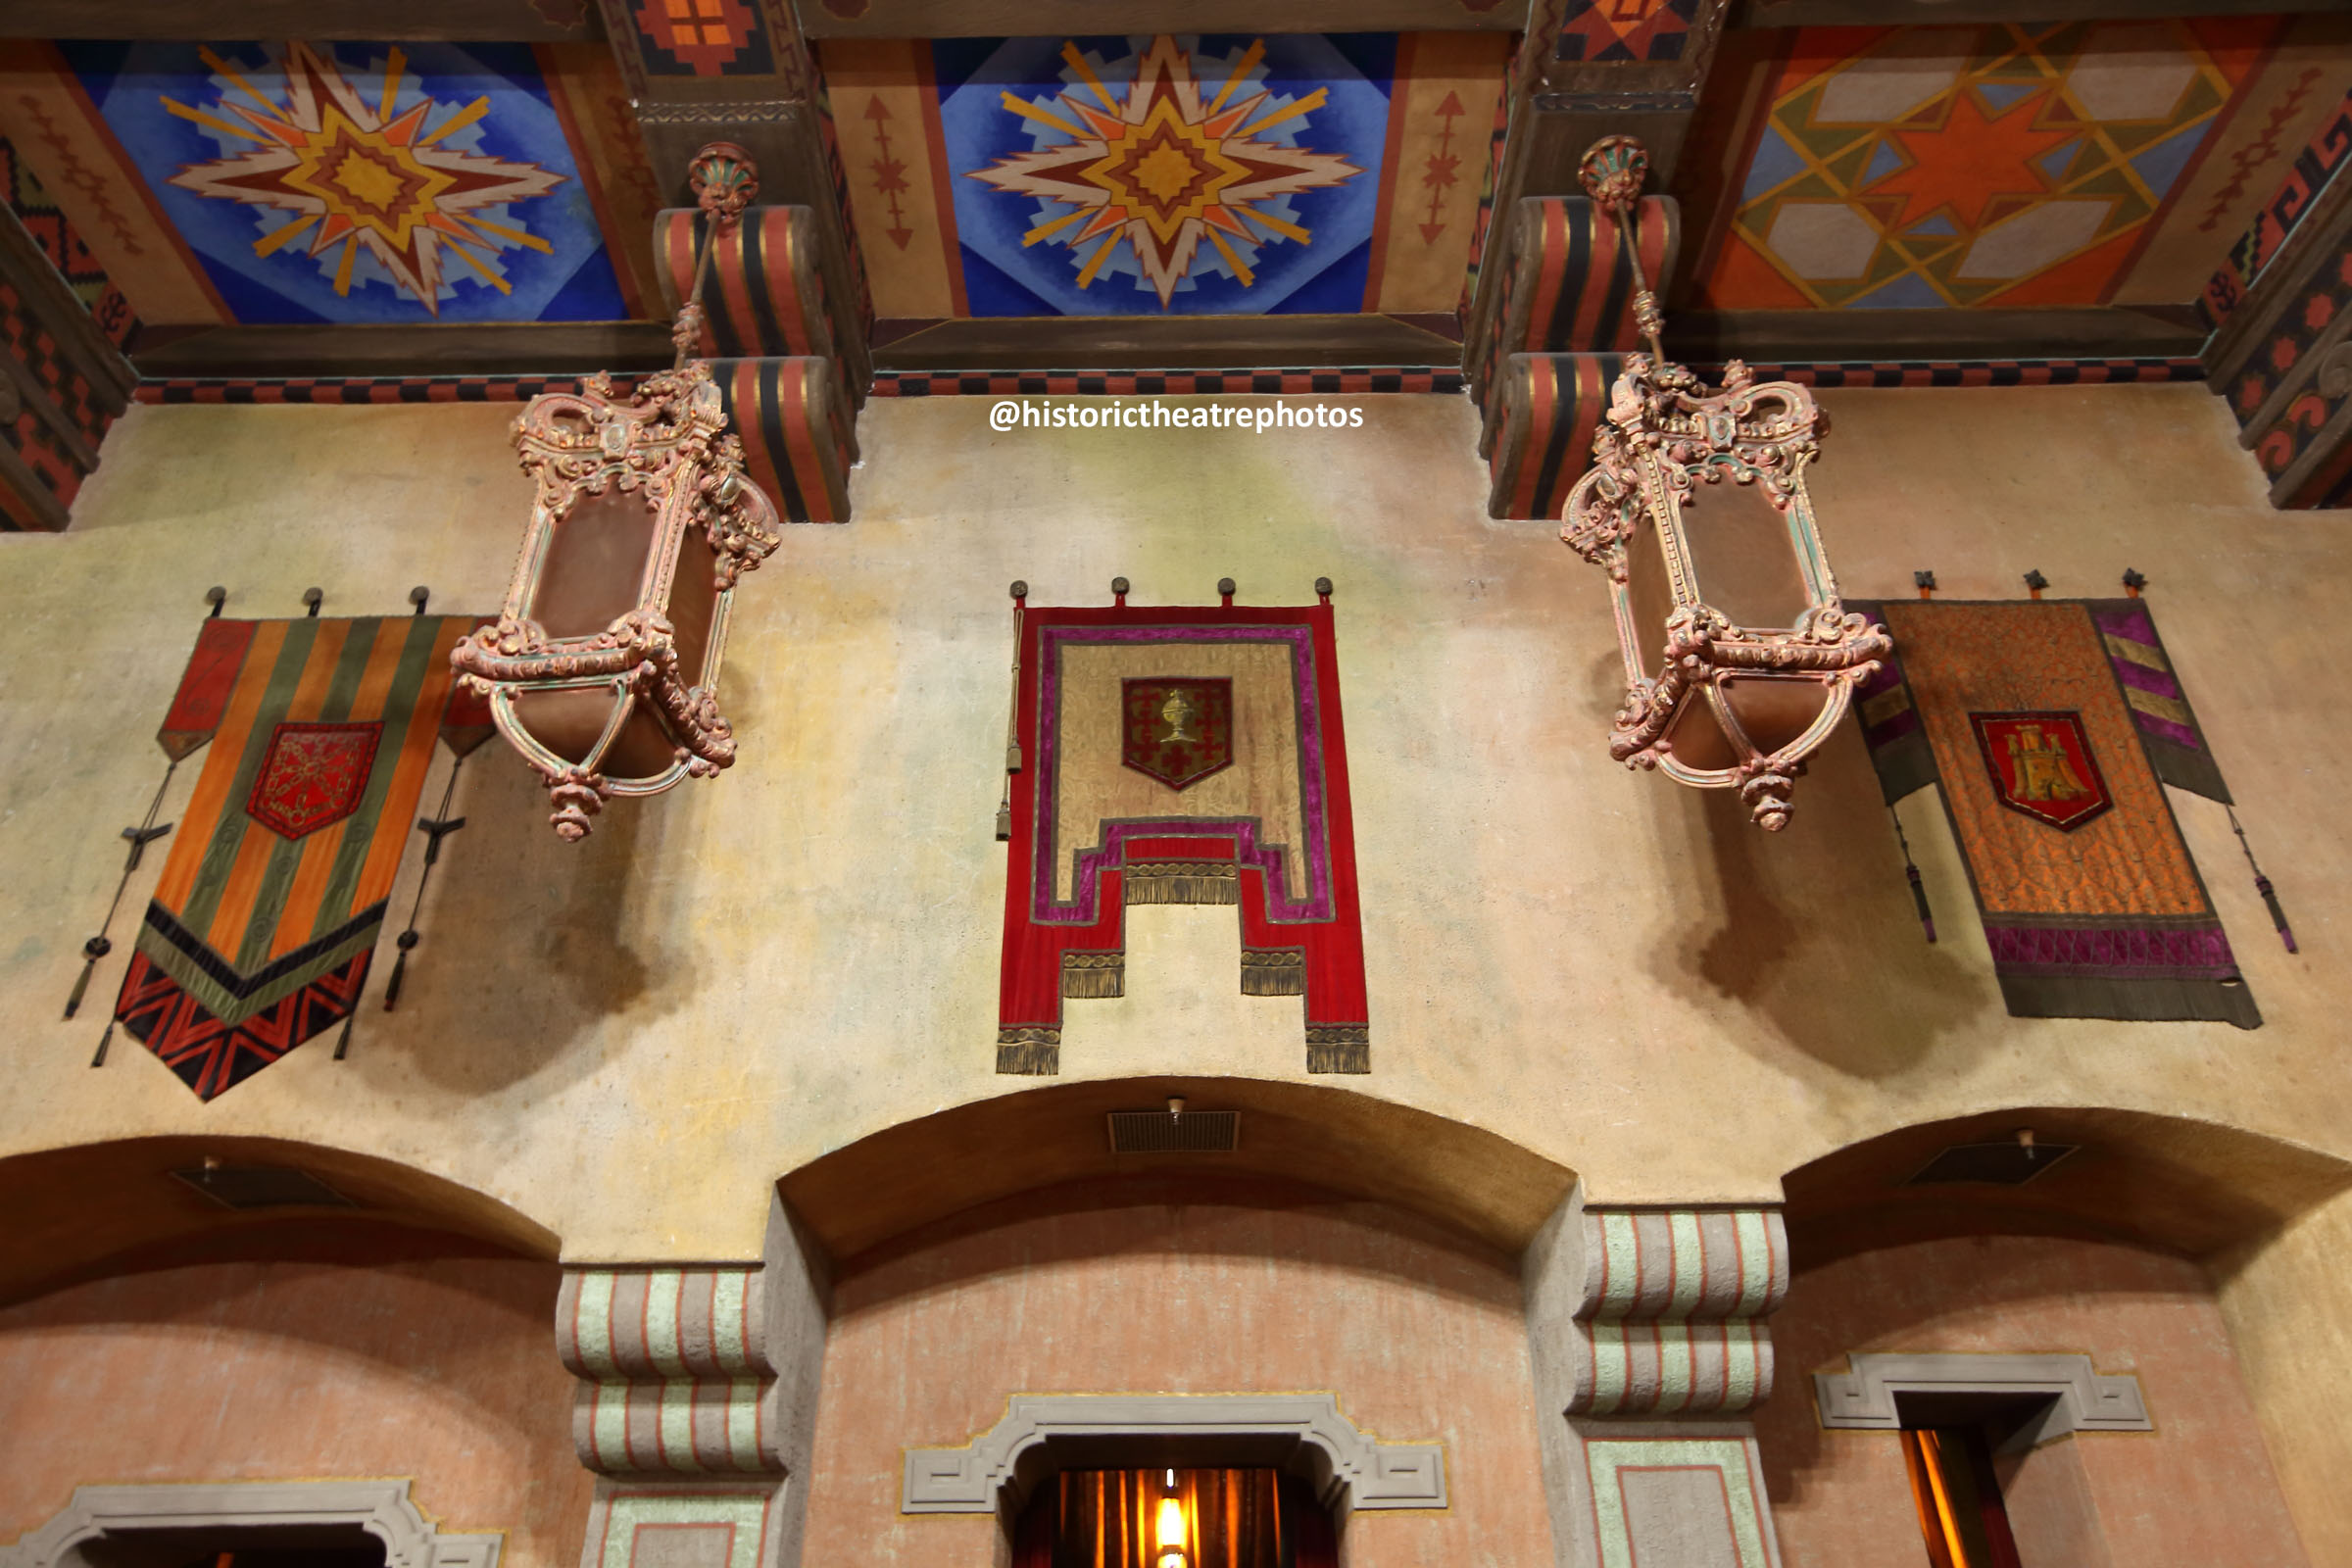 San Gabriel Mission Playhouse: Tapestries gifted in 1927 by King of Spain